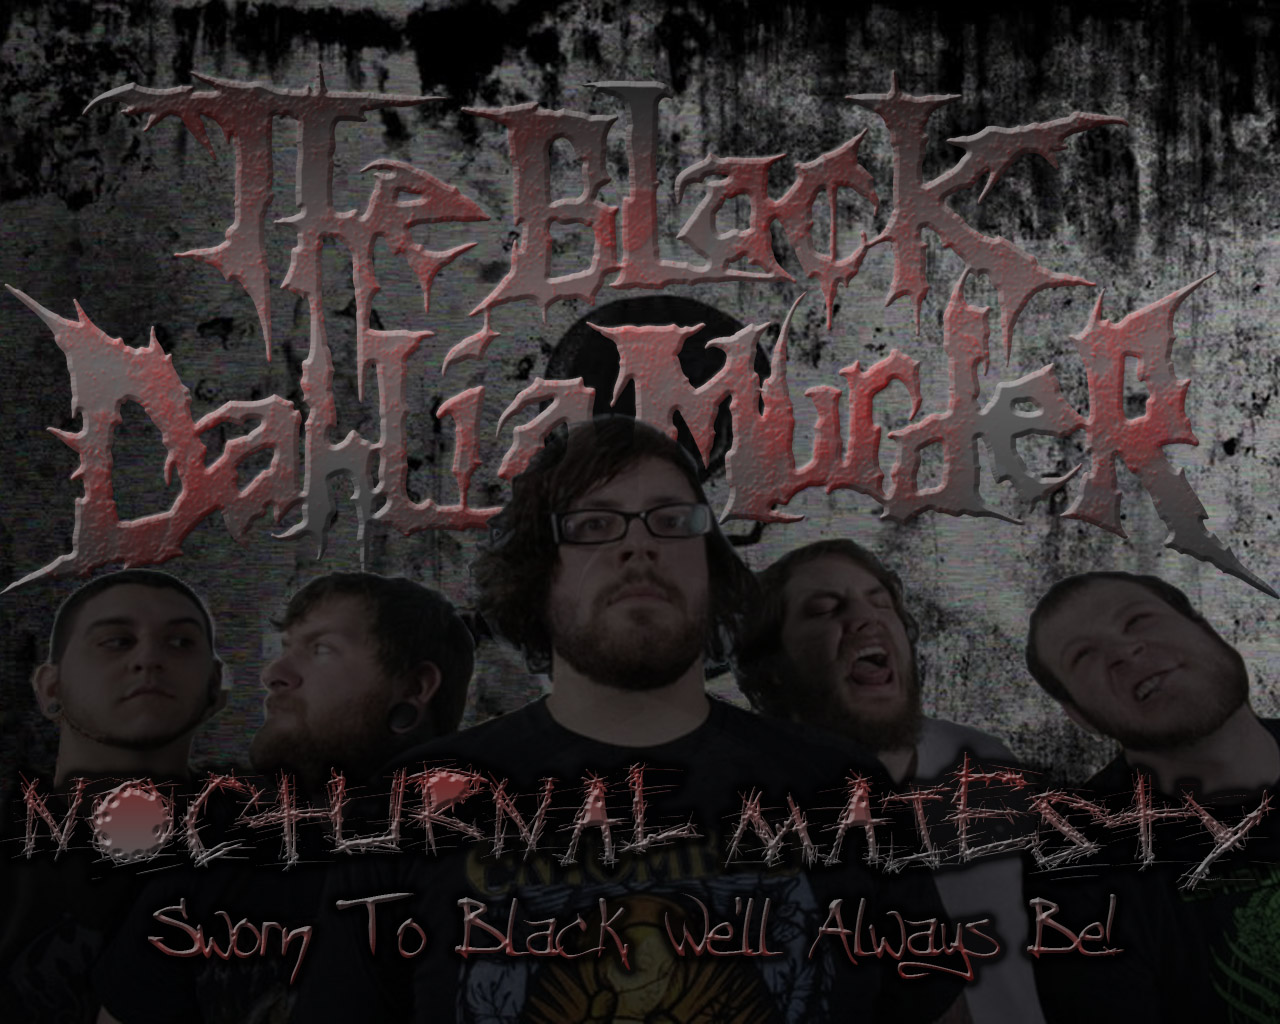 The Black Dahlia Murder Bandswallpapers Free Wallpapers Music